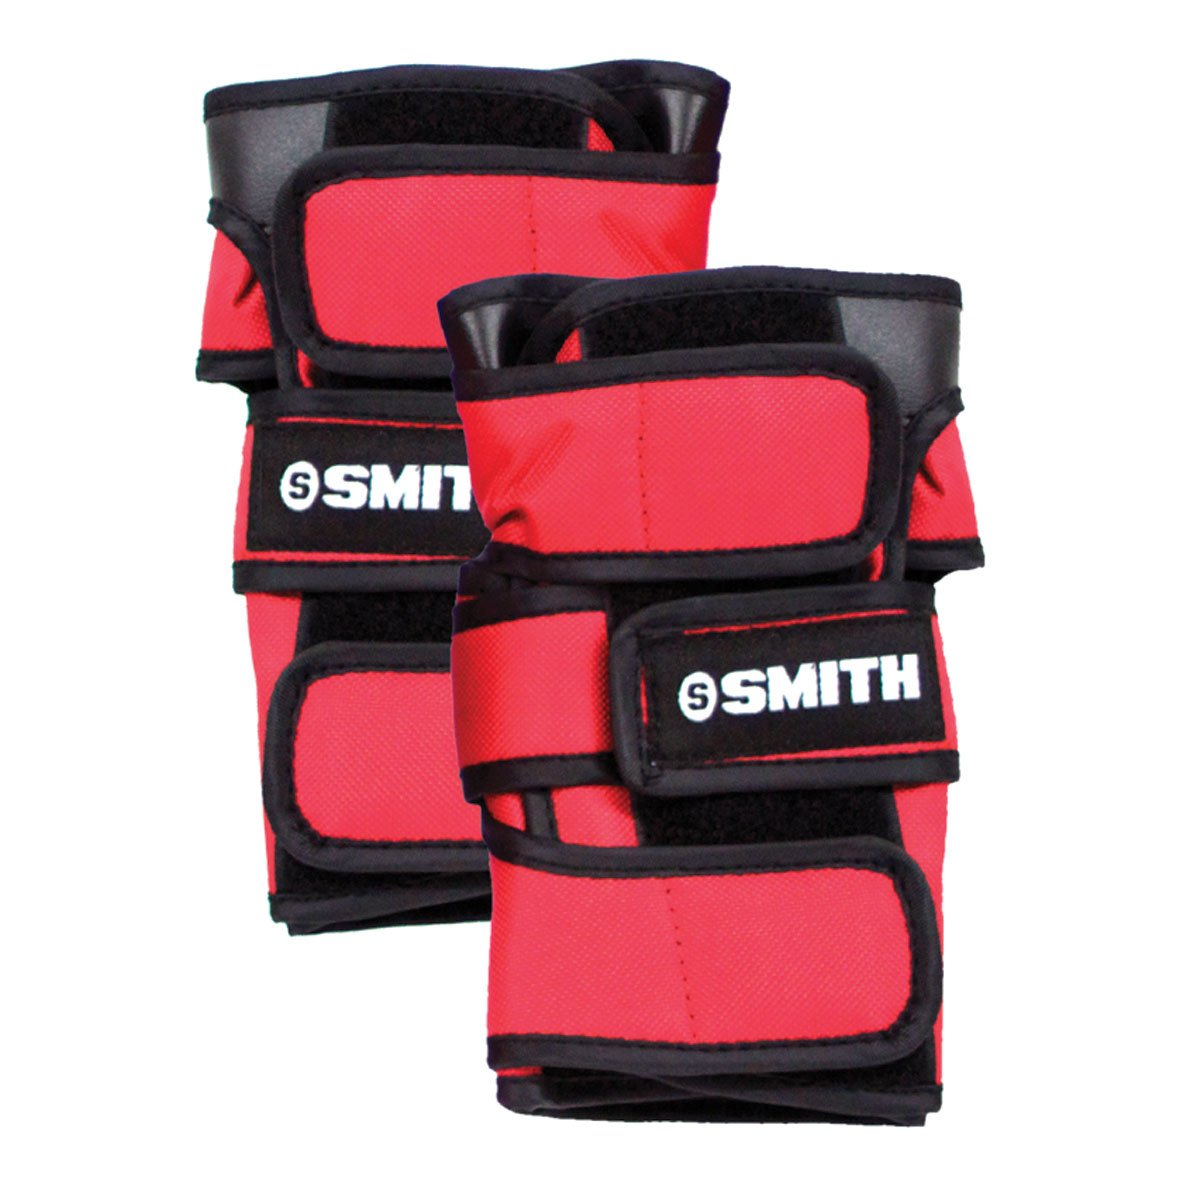 Smith Safety Gear Scabs Wrist Guards, Red, Small